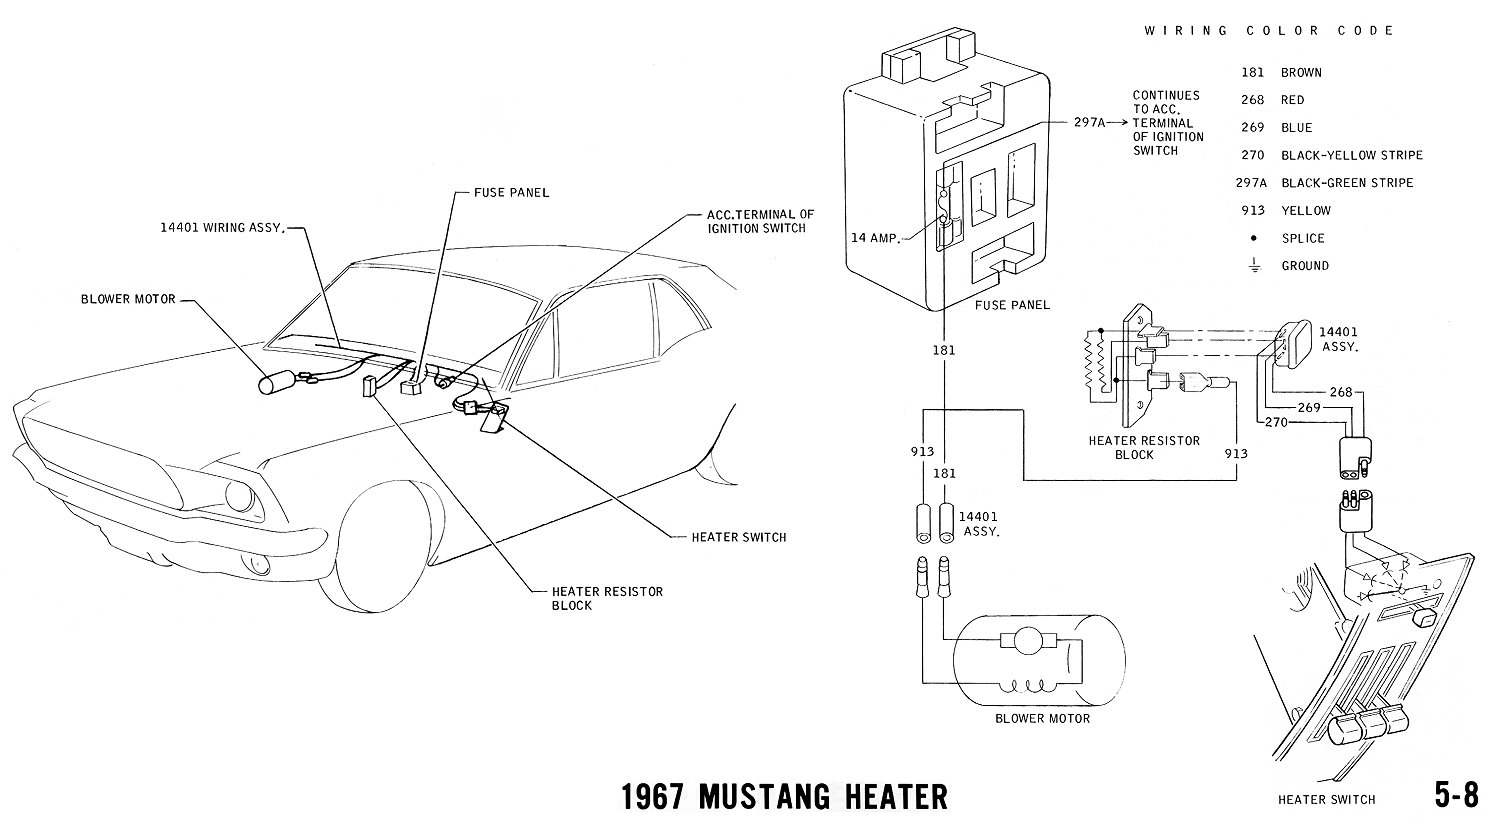 wiring diagram 1966 mustang safety switch the wiring diagram 1967 mustang wiring and vacuum diagrams average joe restoration wiring diagram